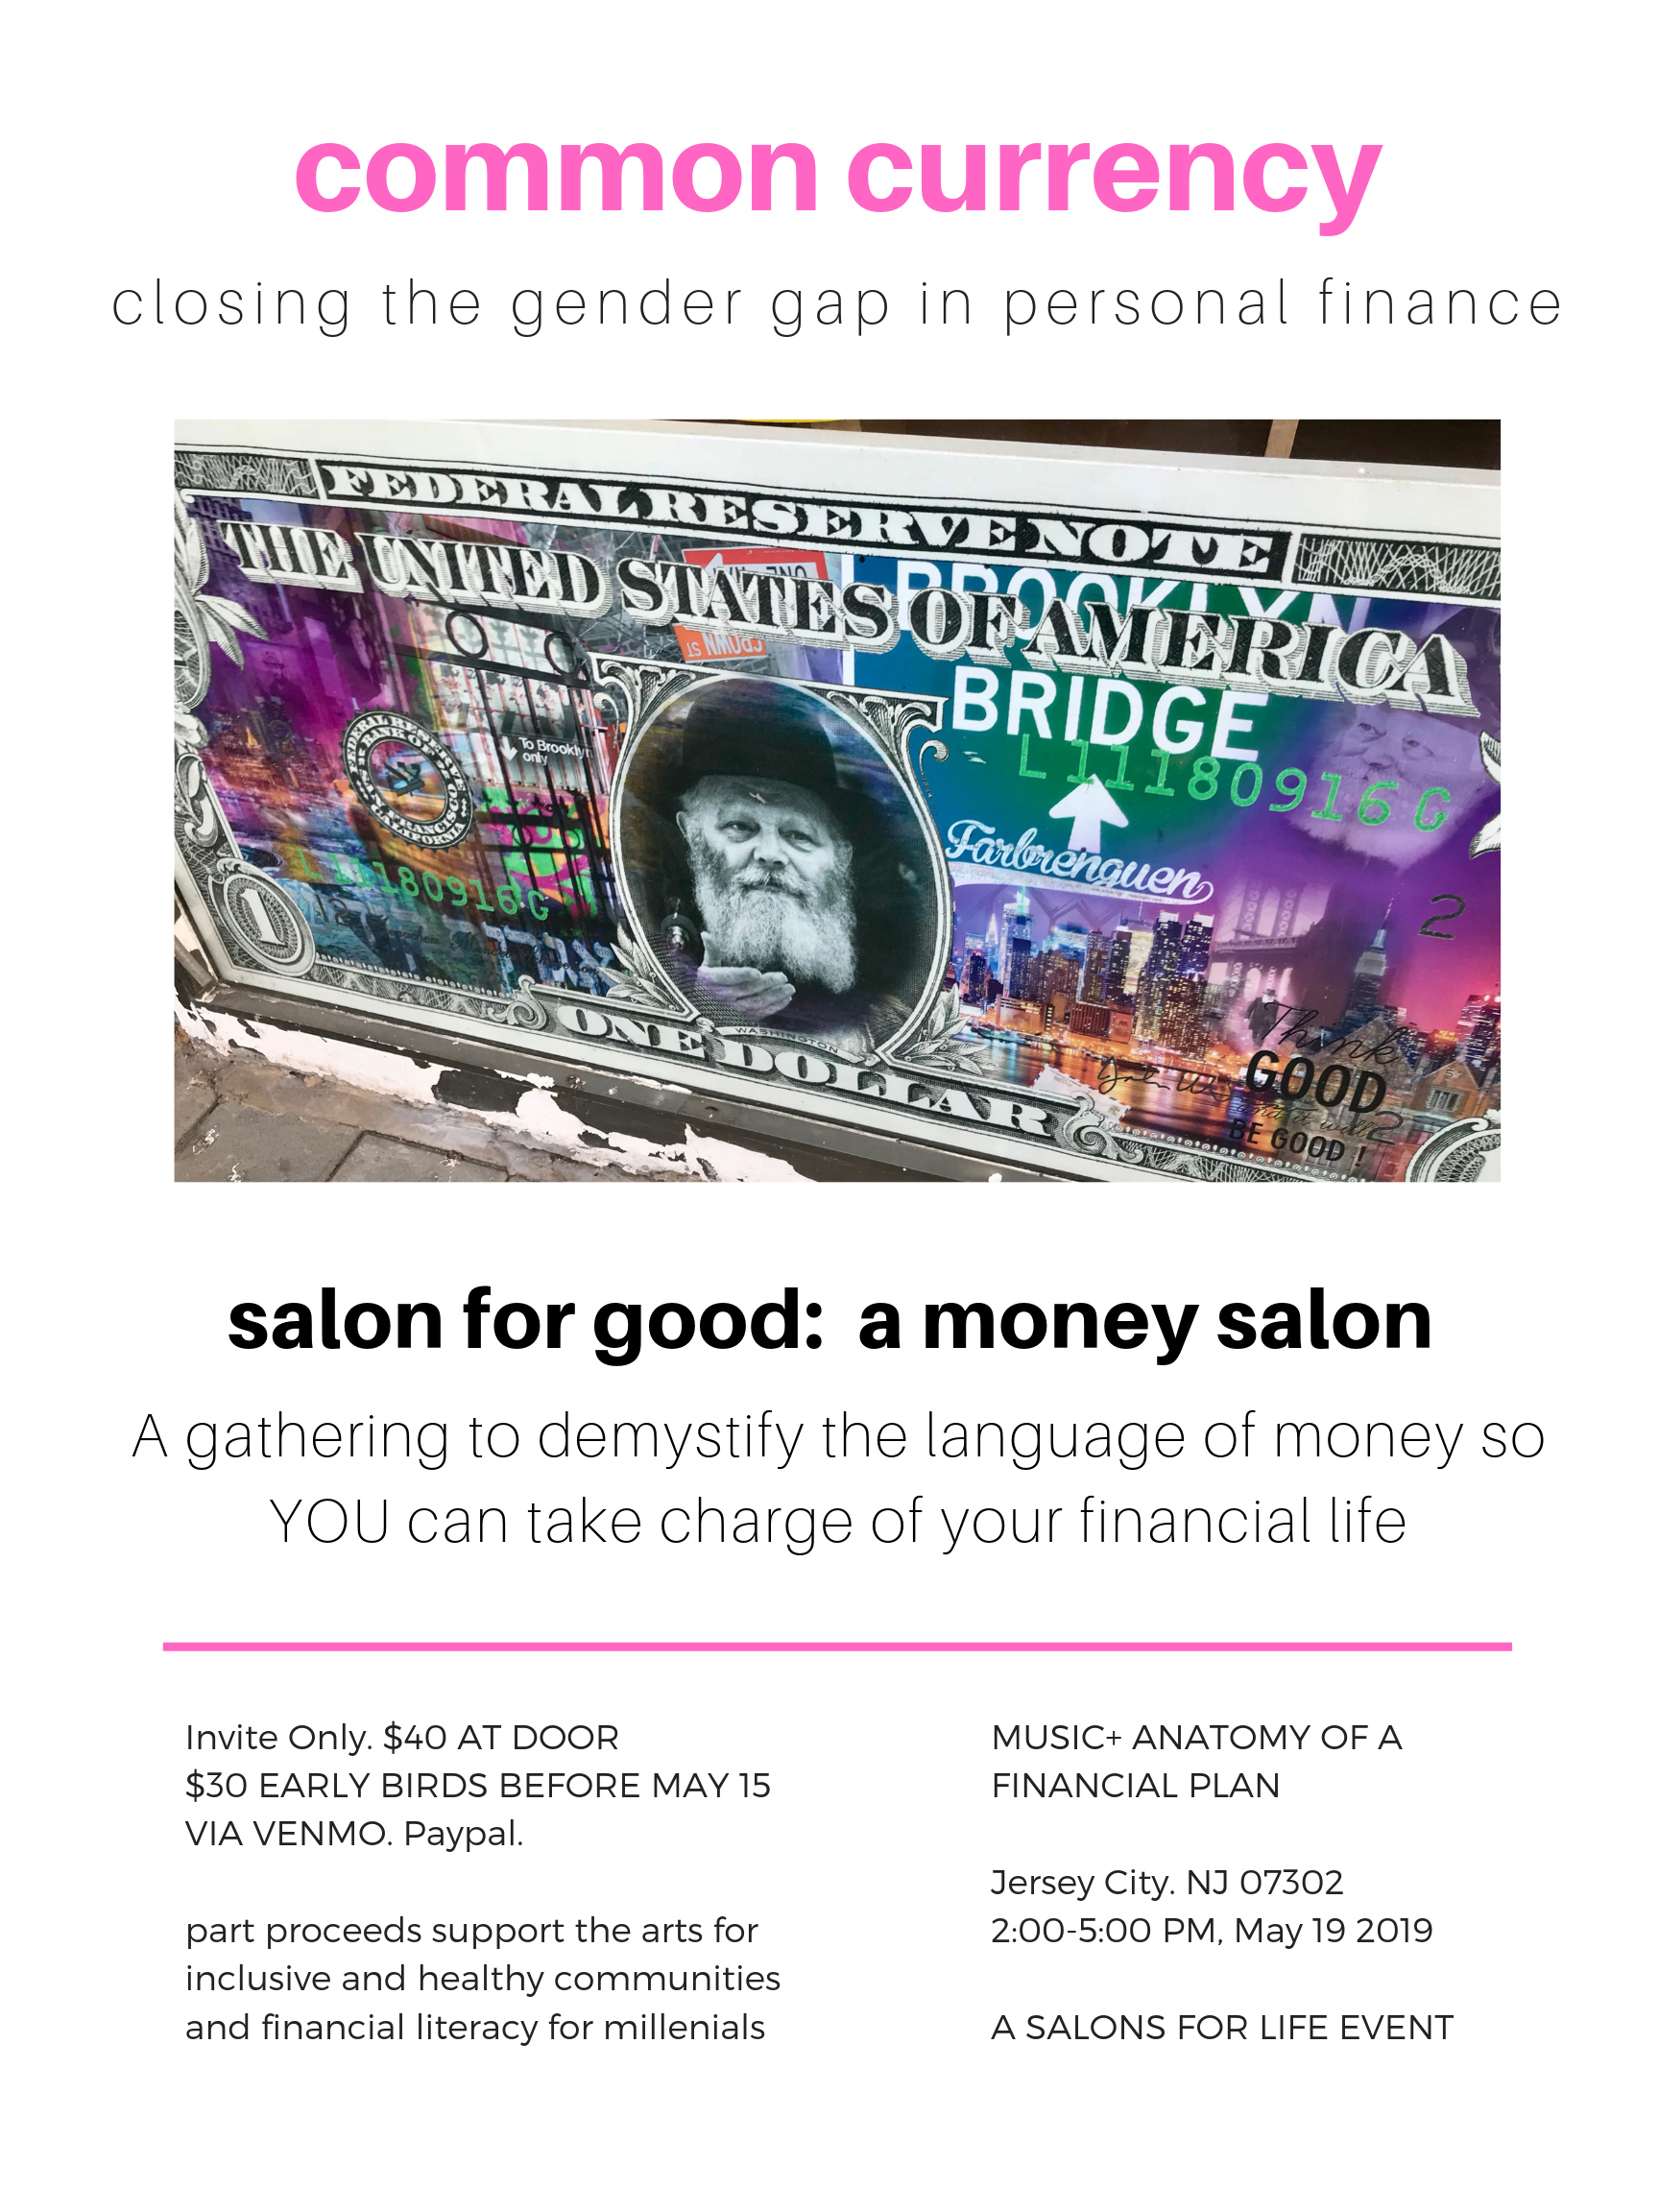 Website_ common currency 05192019.png